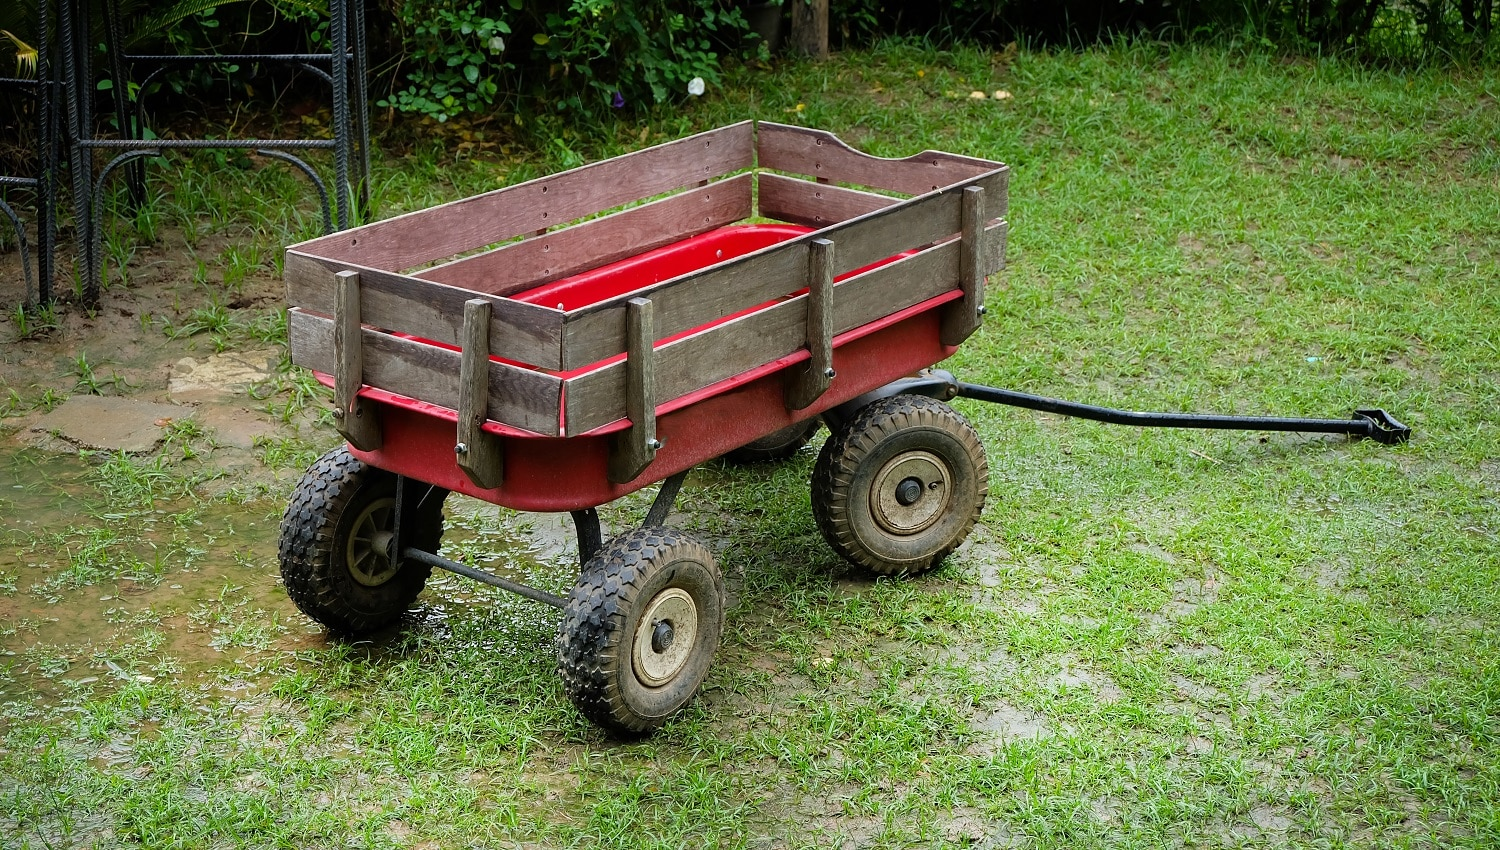 Red wagon small size on a green lawn